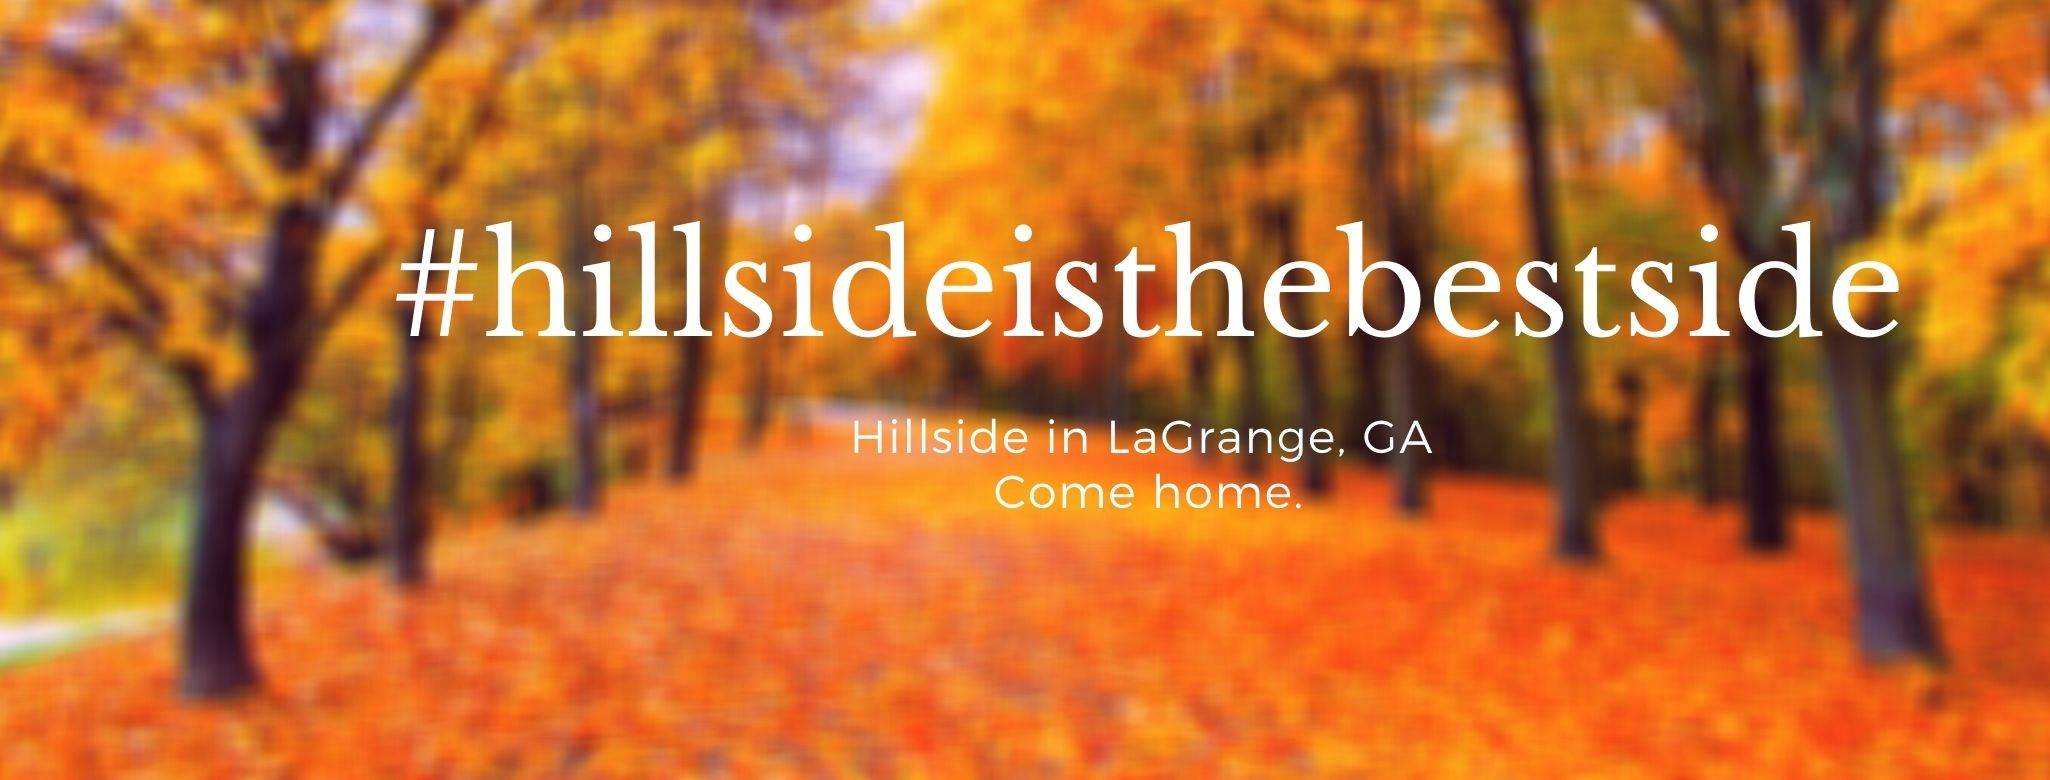 White & Orange Blurred Background Autumn Fall Quote Facebook Cover